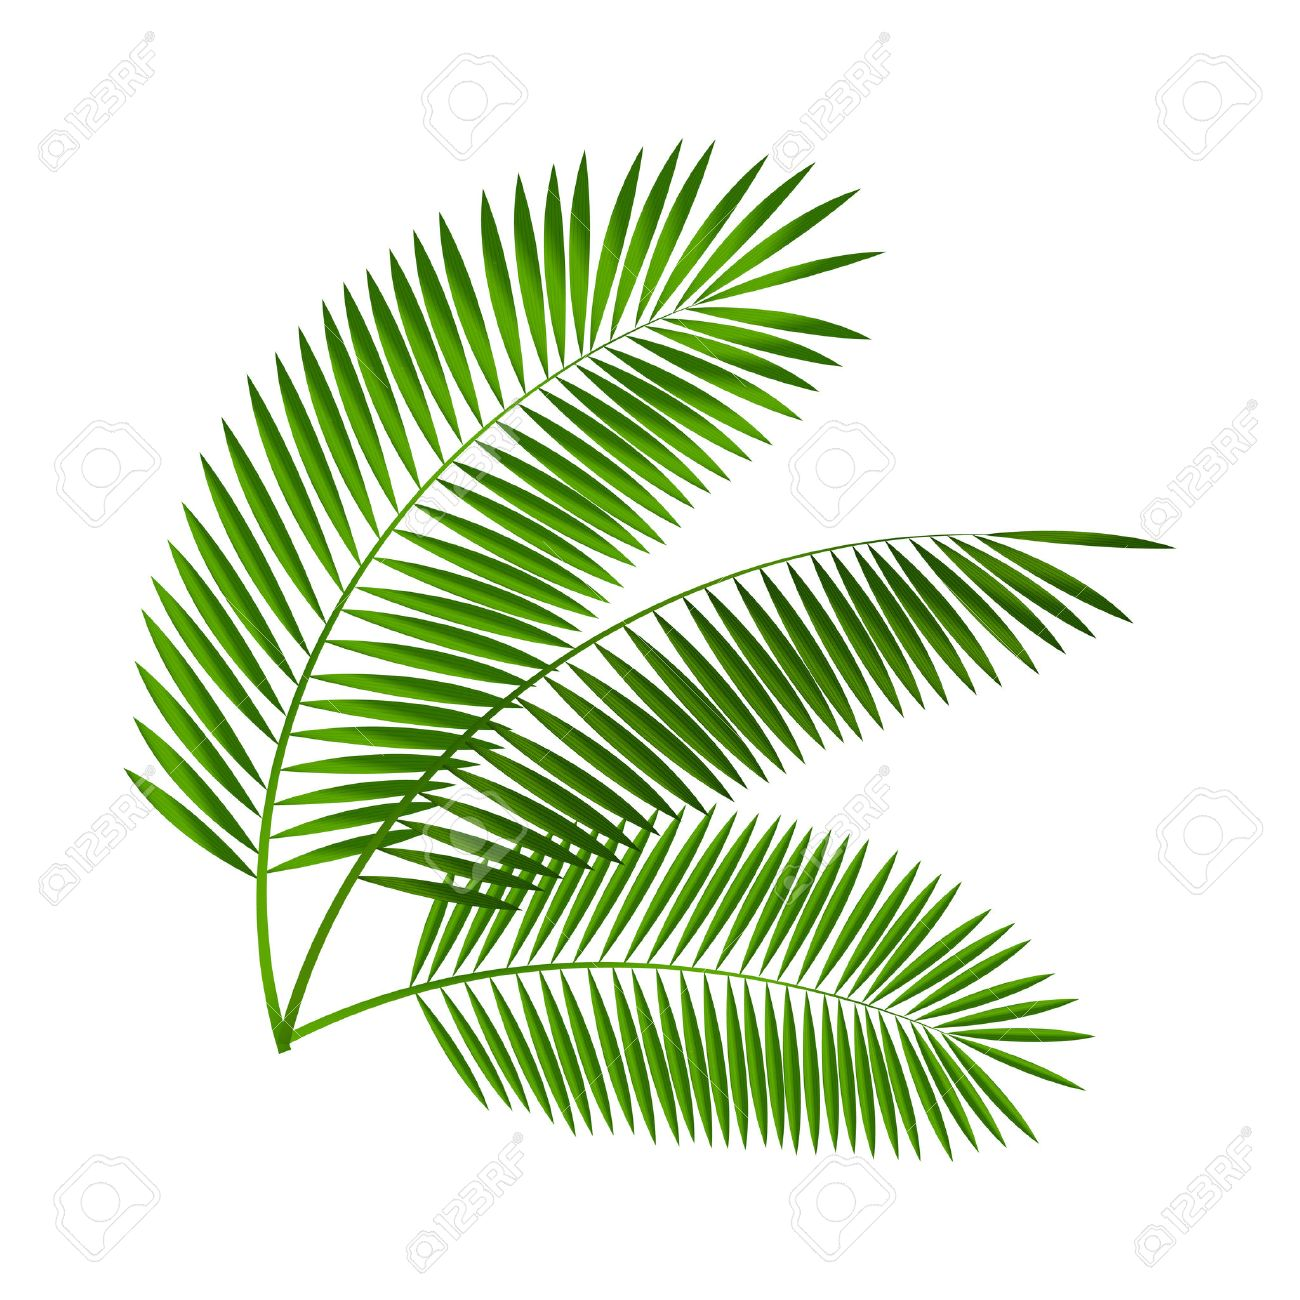 palm leaf vector illustration royalty free cliparts vectors and rh 123rf com palm leaf vector download palm leaf vector file